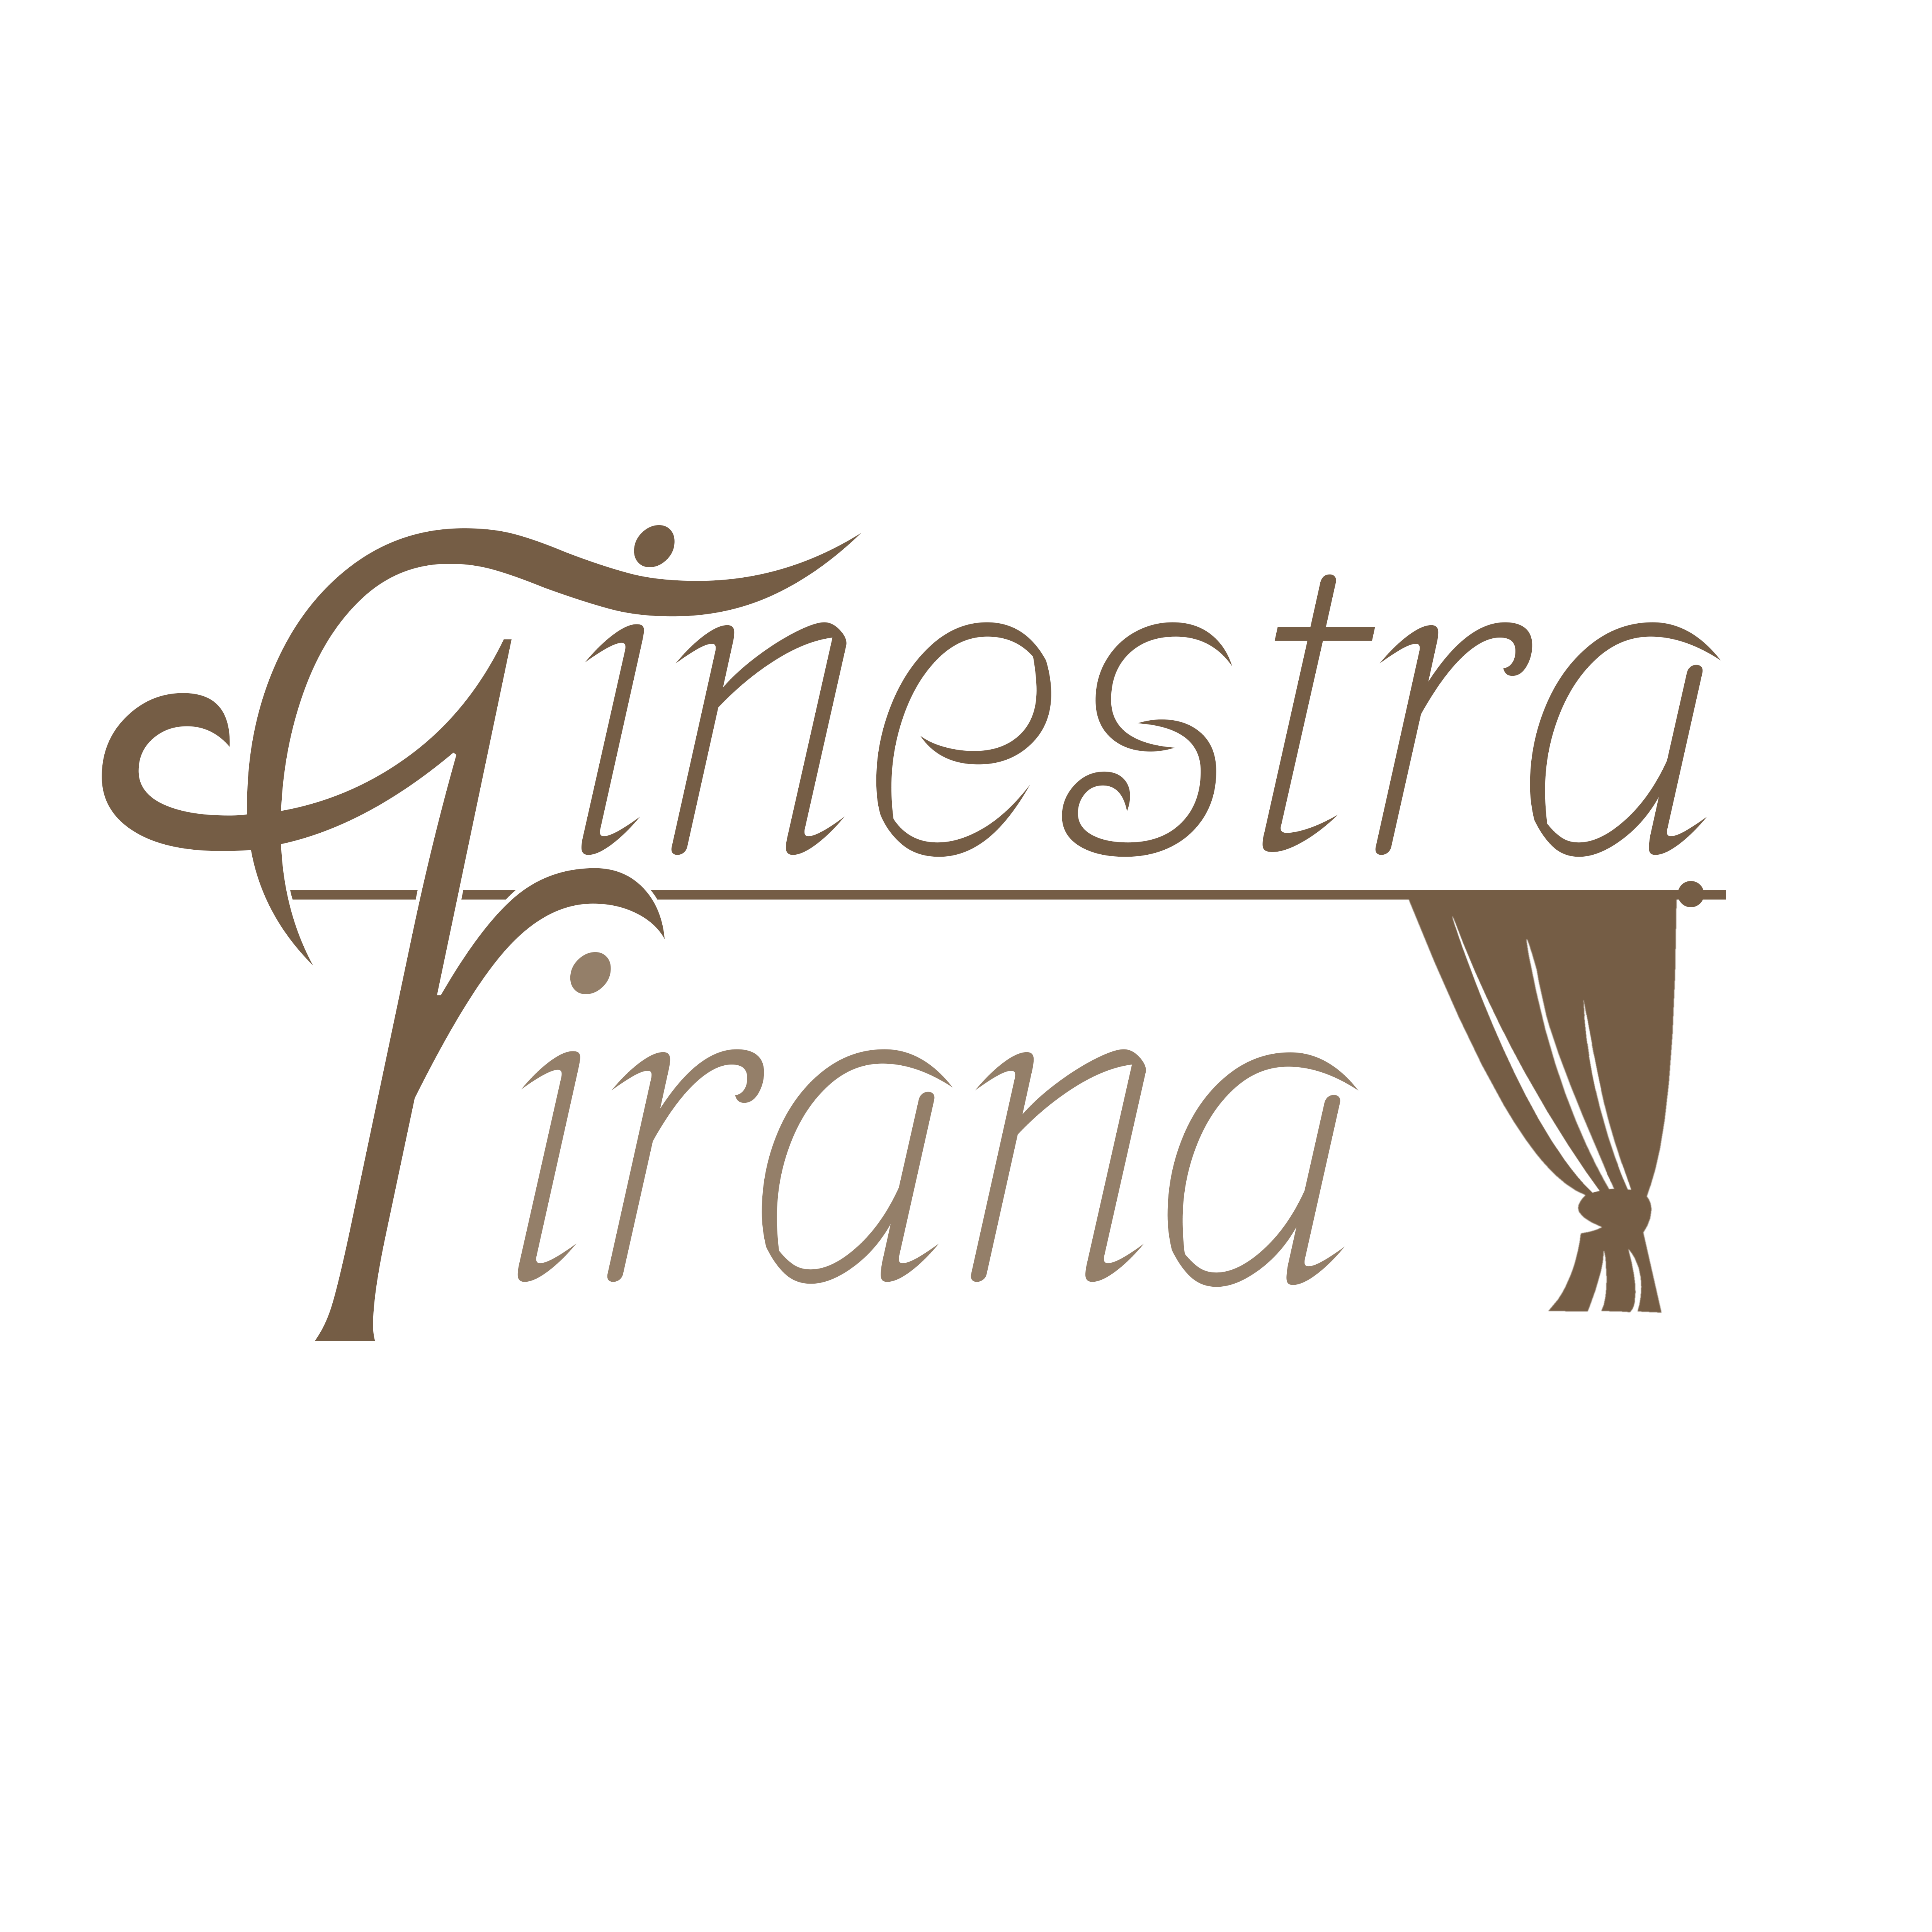 Salon Firan Finestra